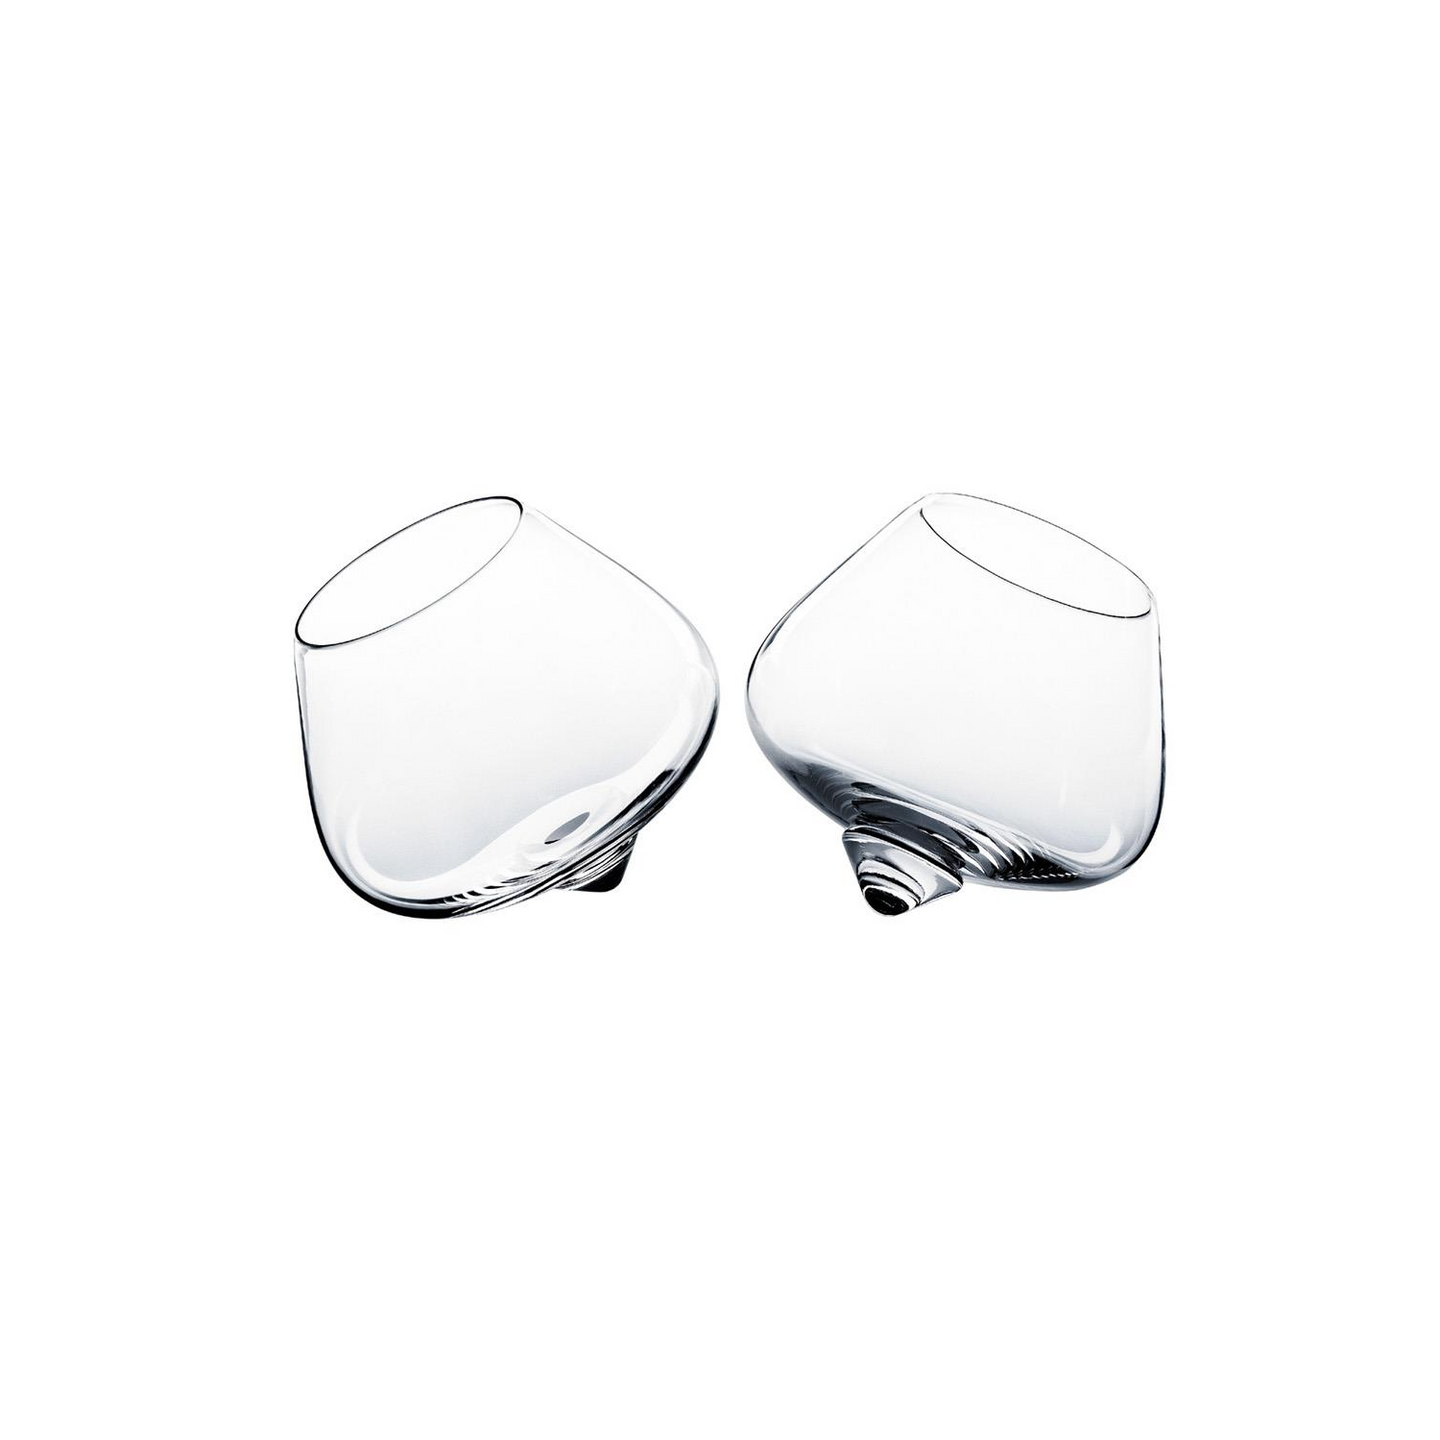 Turning Glass - 2 pcs, 15 cl Glass